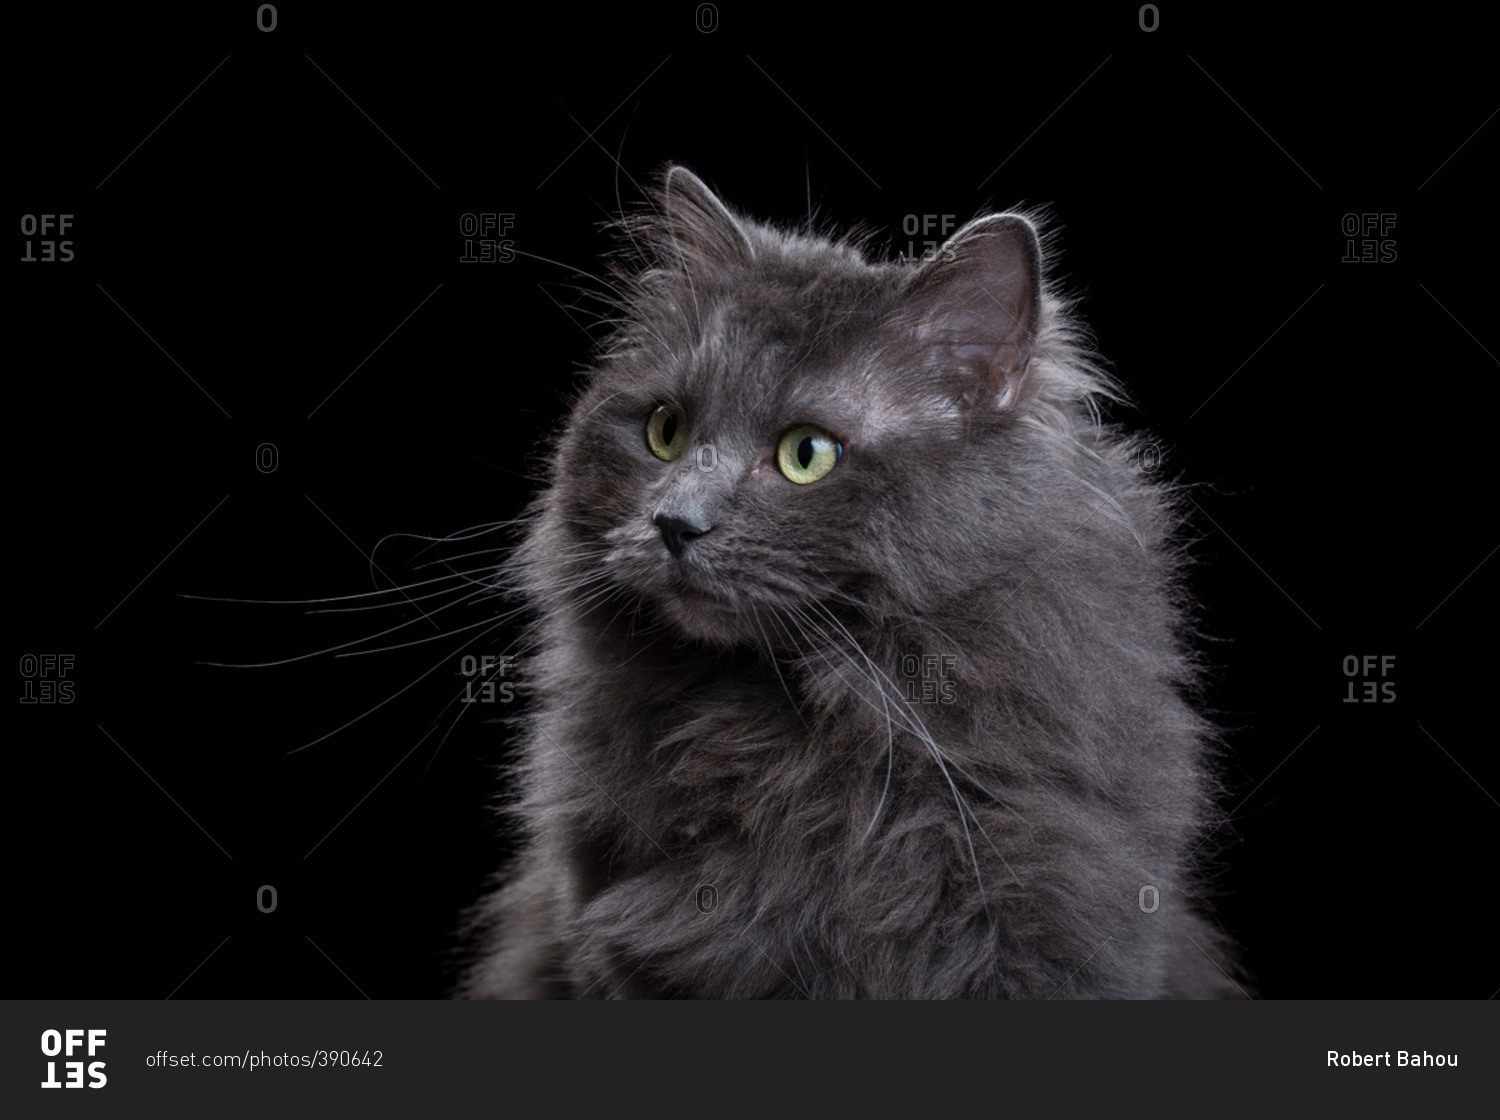 6 year old cat in human years